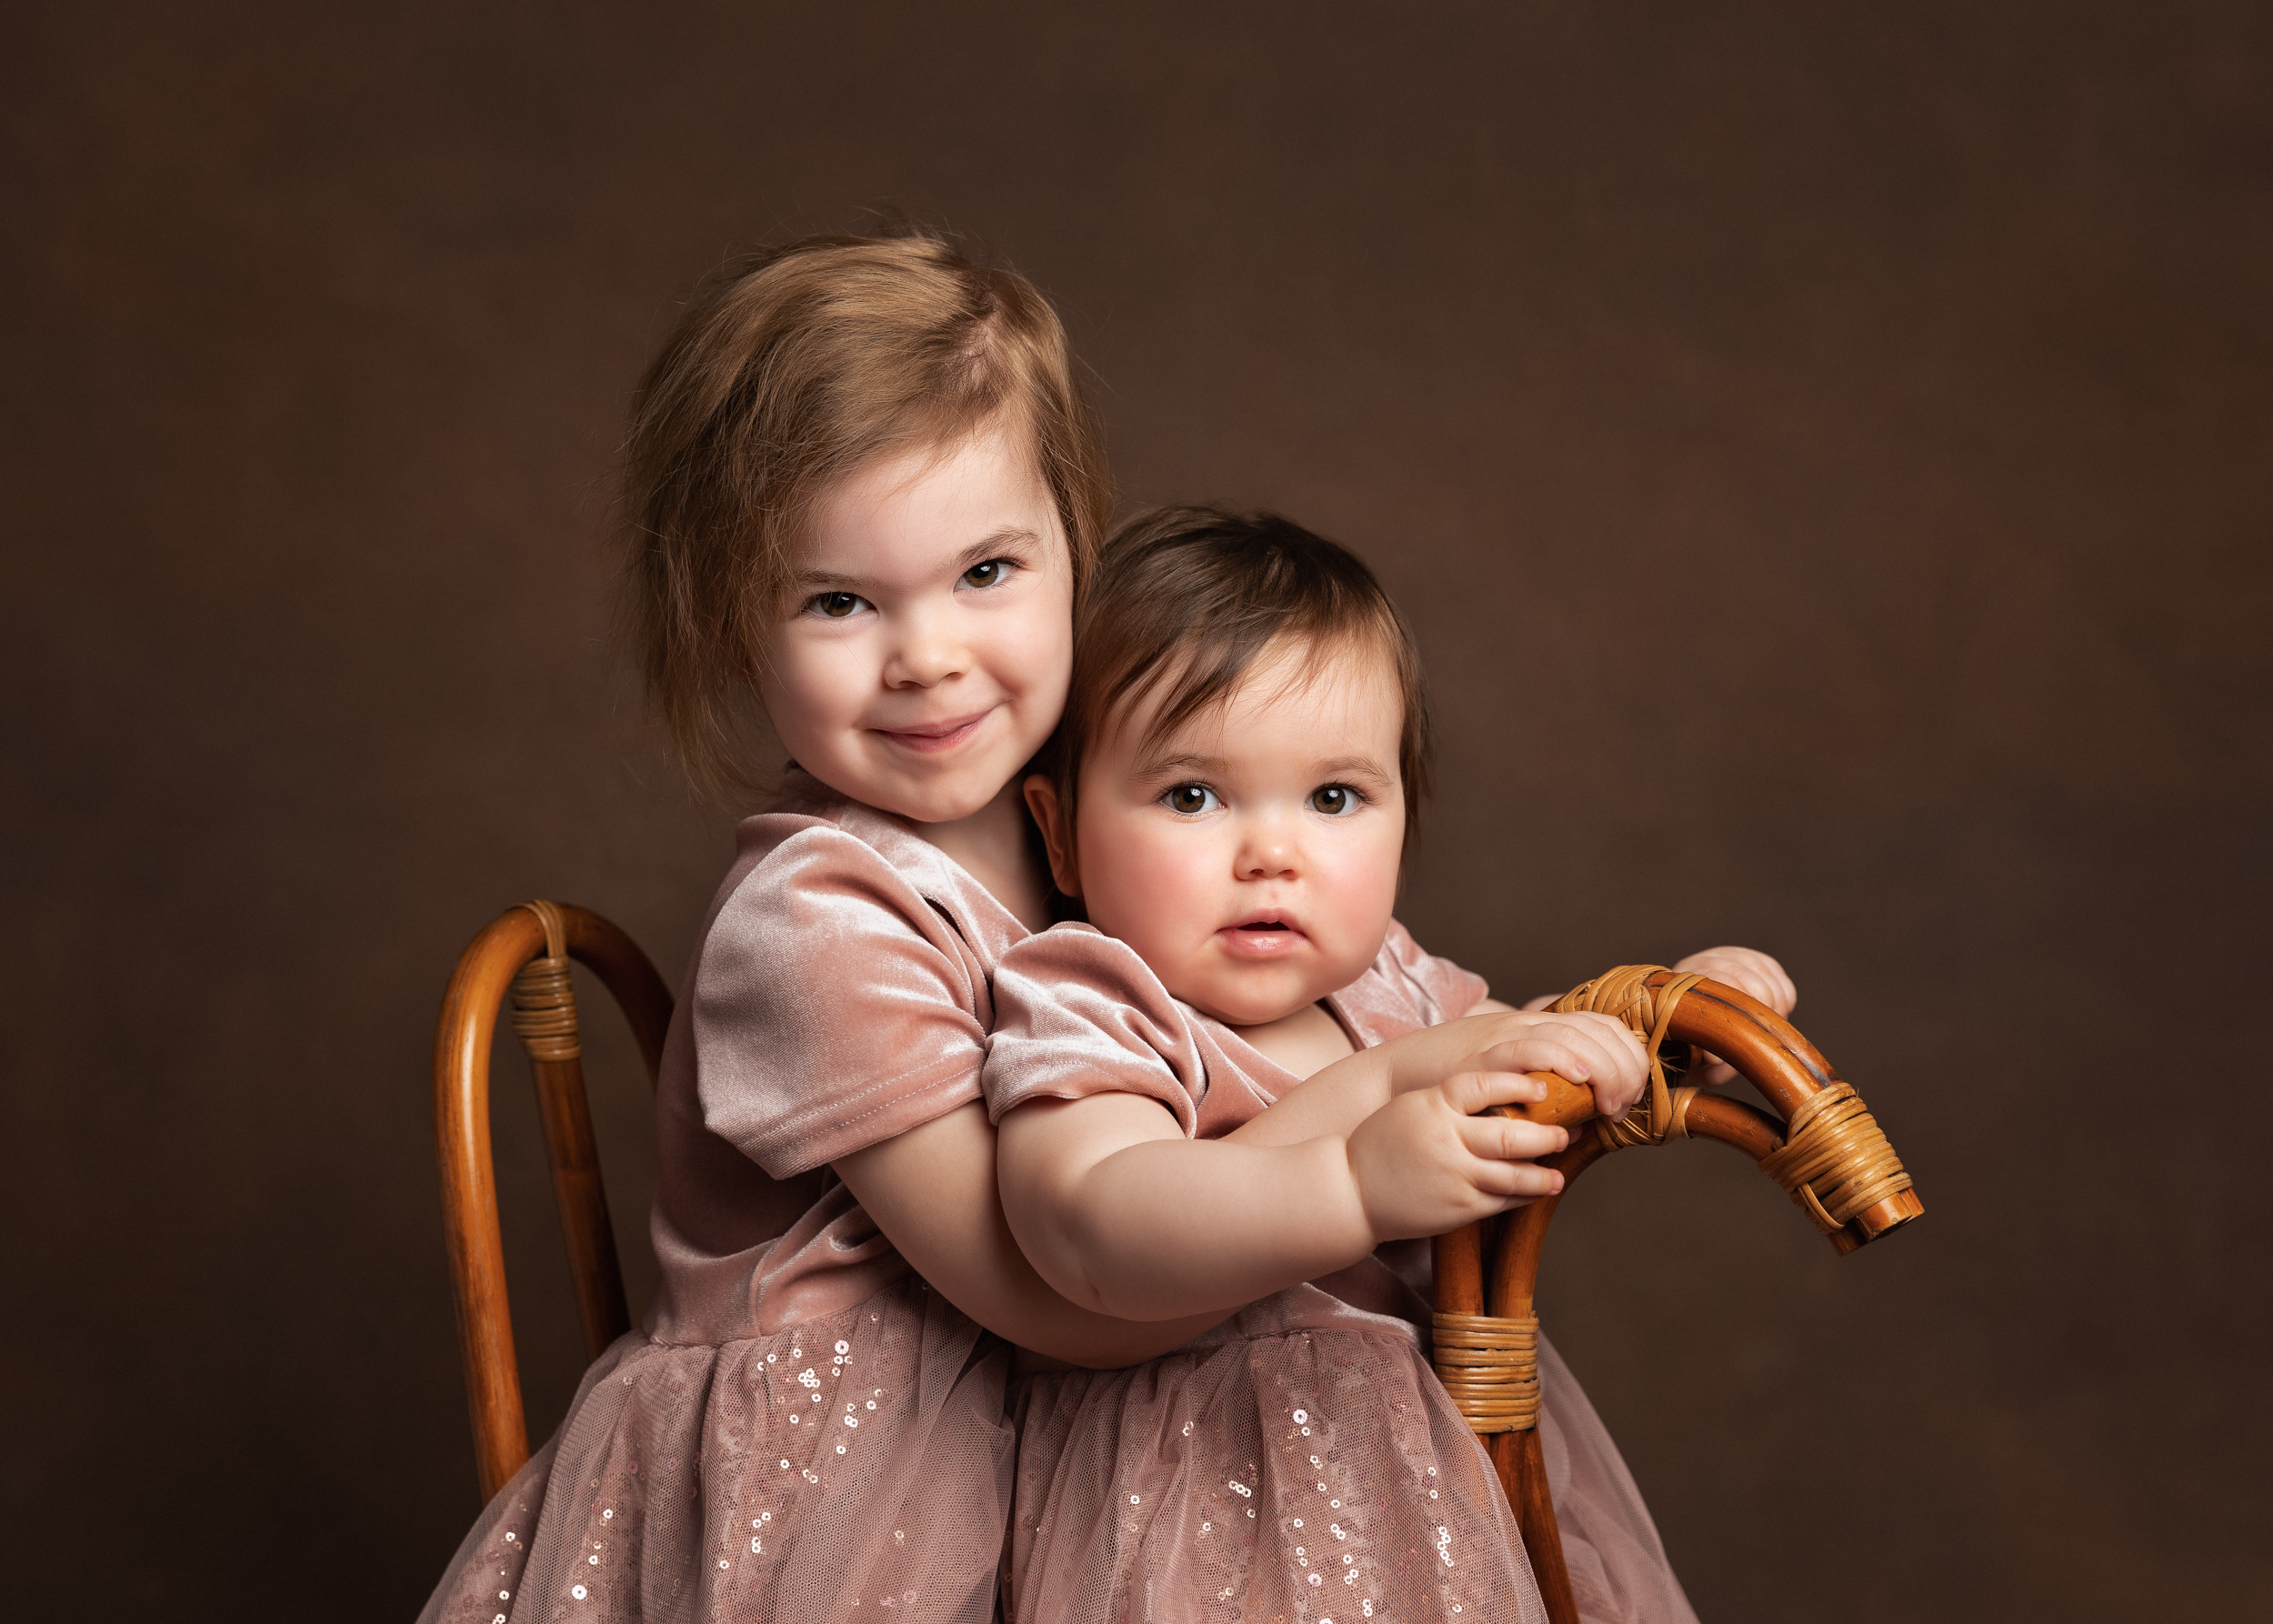 Sisters on a rocking horse for a family portrait in Sandbach, Cheshire